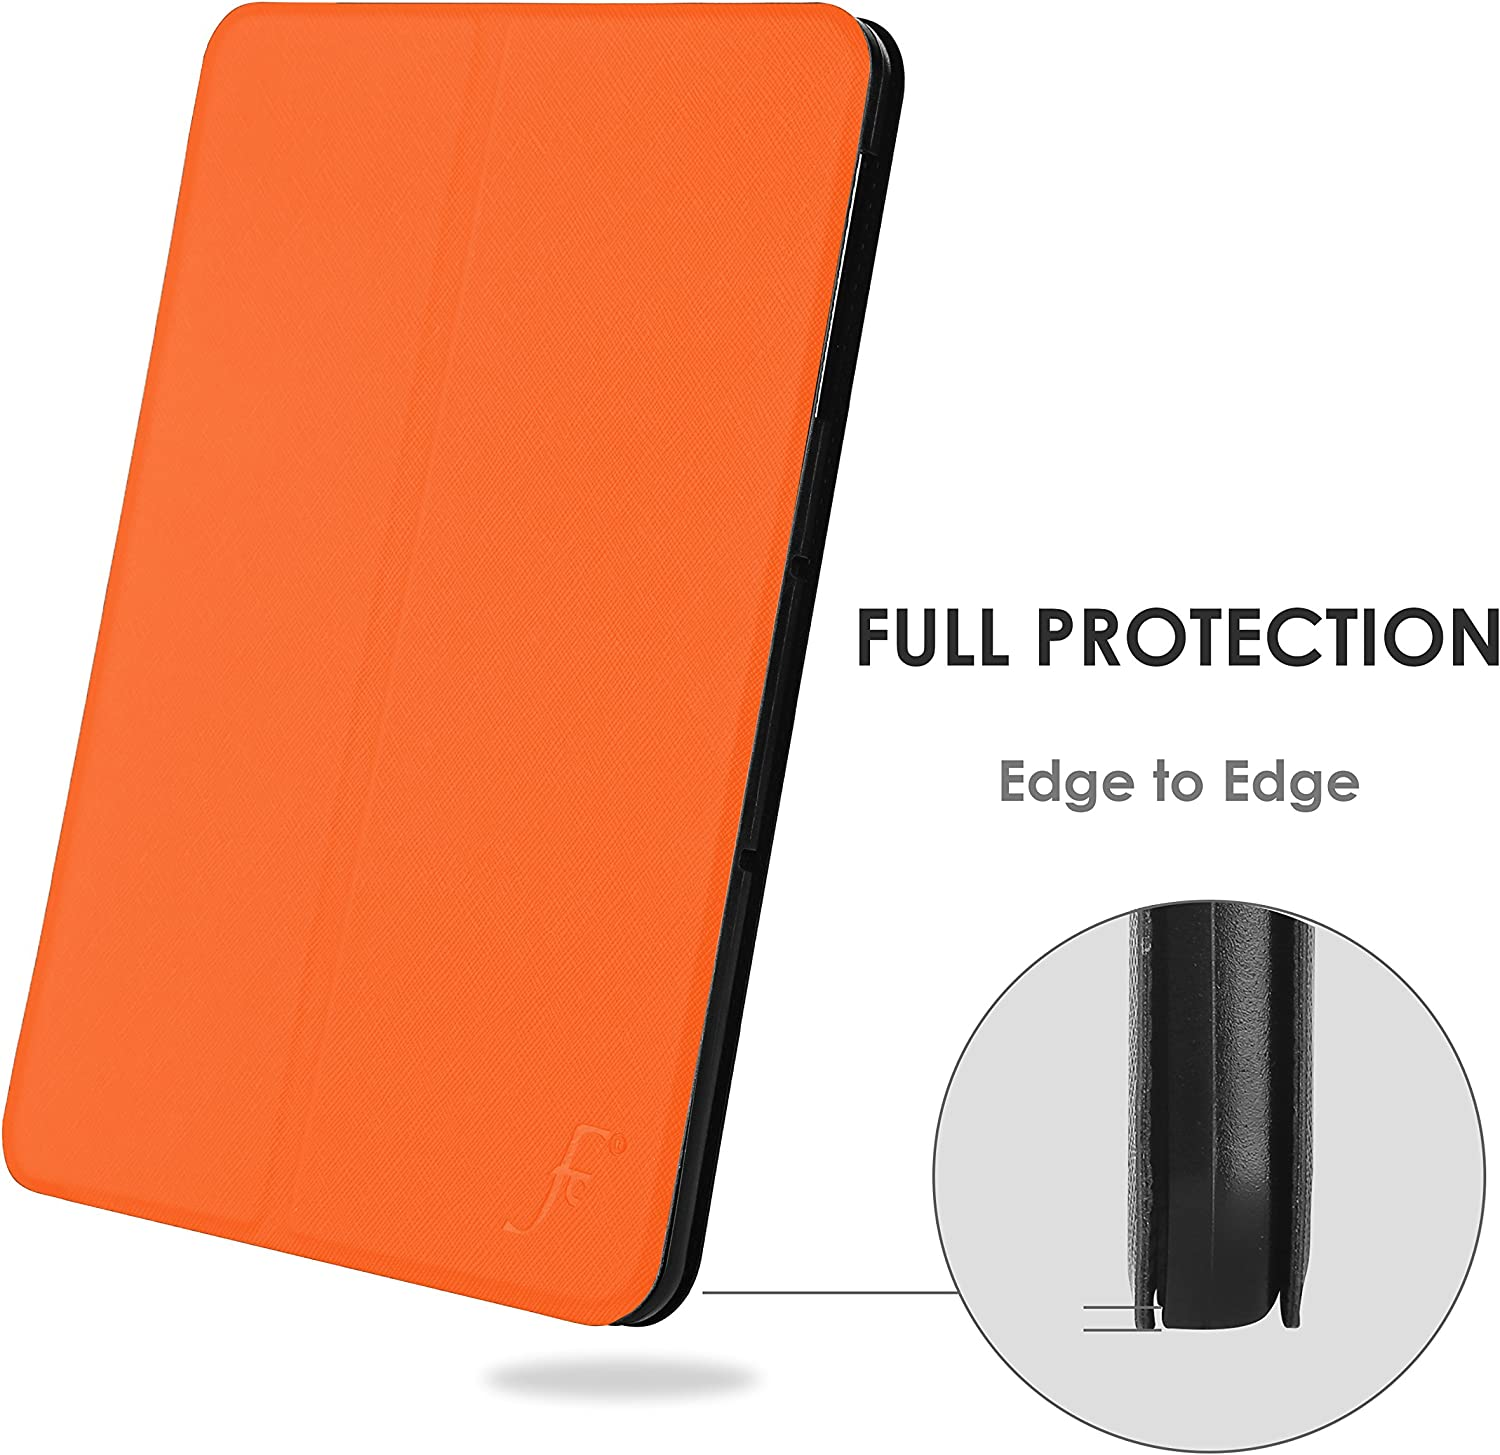 Red FC Case for Huawei Mediapad T3 8 Magnetic Protective Case Cover and Stand for MediaPad T3 8 8.0-inch Slim Lightweight Stylus /& Protector